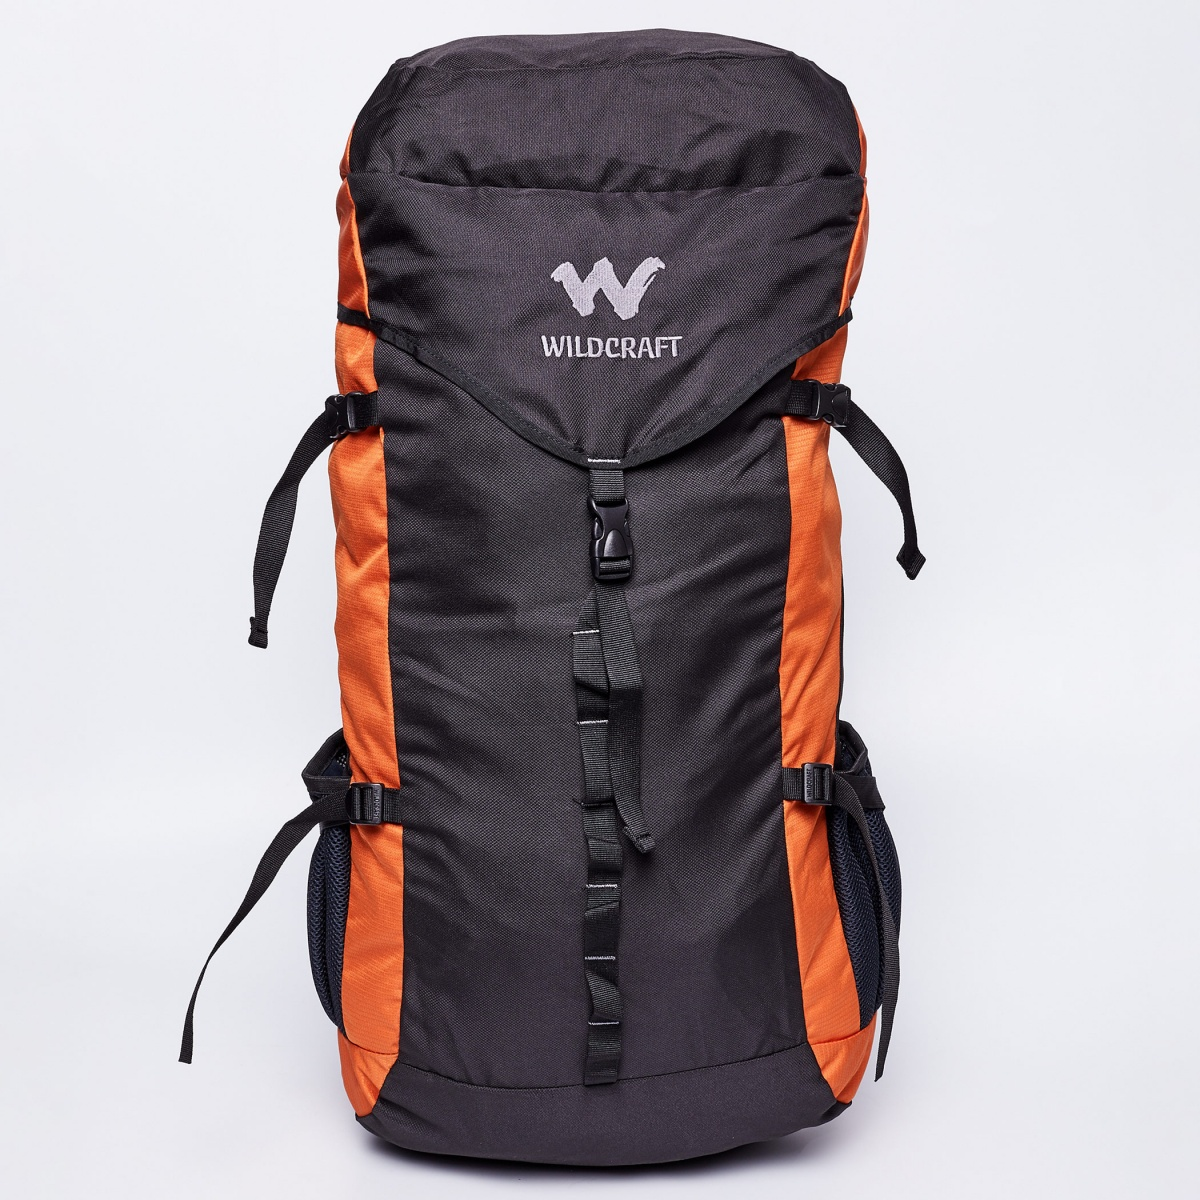 WILDCRAFT Panelled Drawstring Closure Backpack